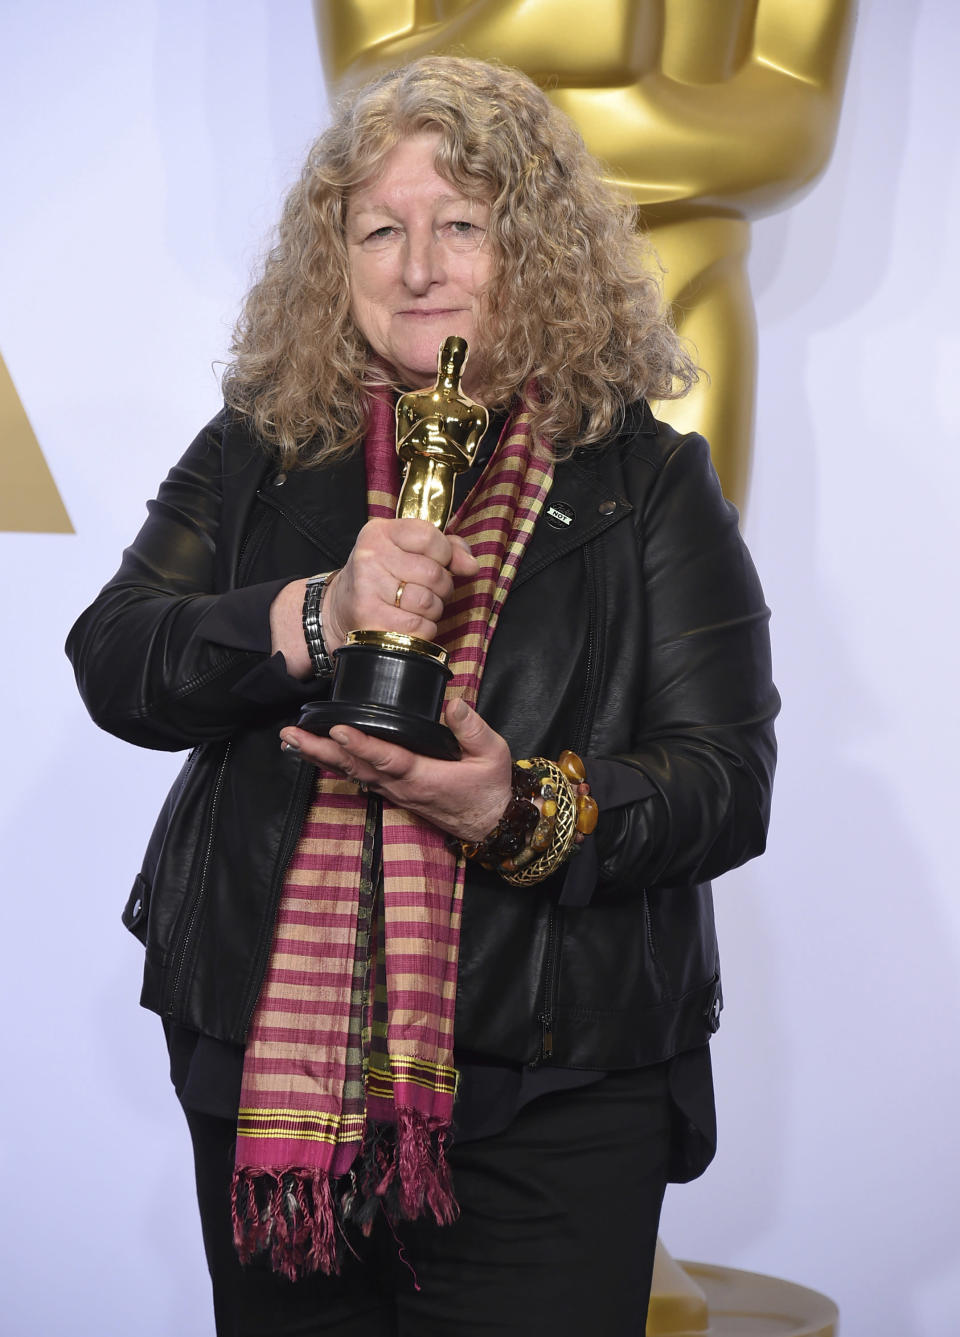 """FILE - Jenny Beavan poses with the award for best costume design for """"Mad Max: Fury Road"""" at the Oscars in Los Angeles on Feb. 28, 2016. Beavan designed the costumes for the film """"Cruella."""" (Photo by Jordan Strauss/Invision/AP, File)"""